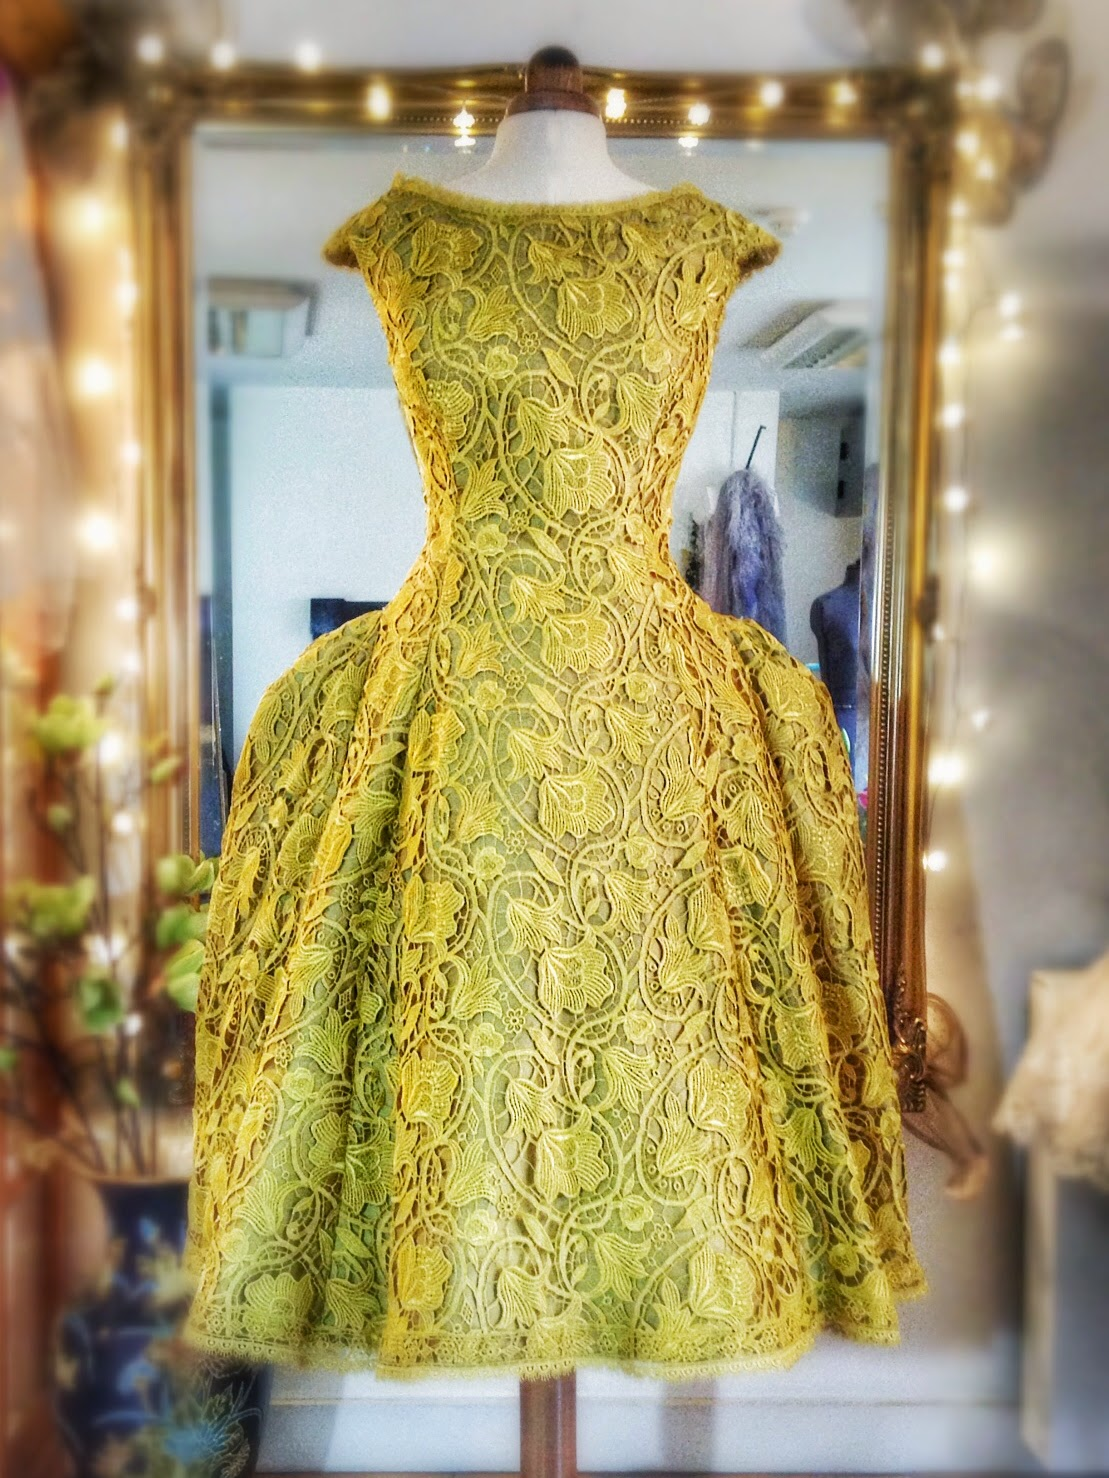 Charming charteuse april 22 2016 zsazsa bellagio like no other chartreuse lace and silk tea length wedding dress by joanne fleming design ombrellifo Images